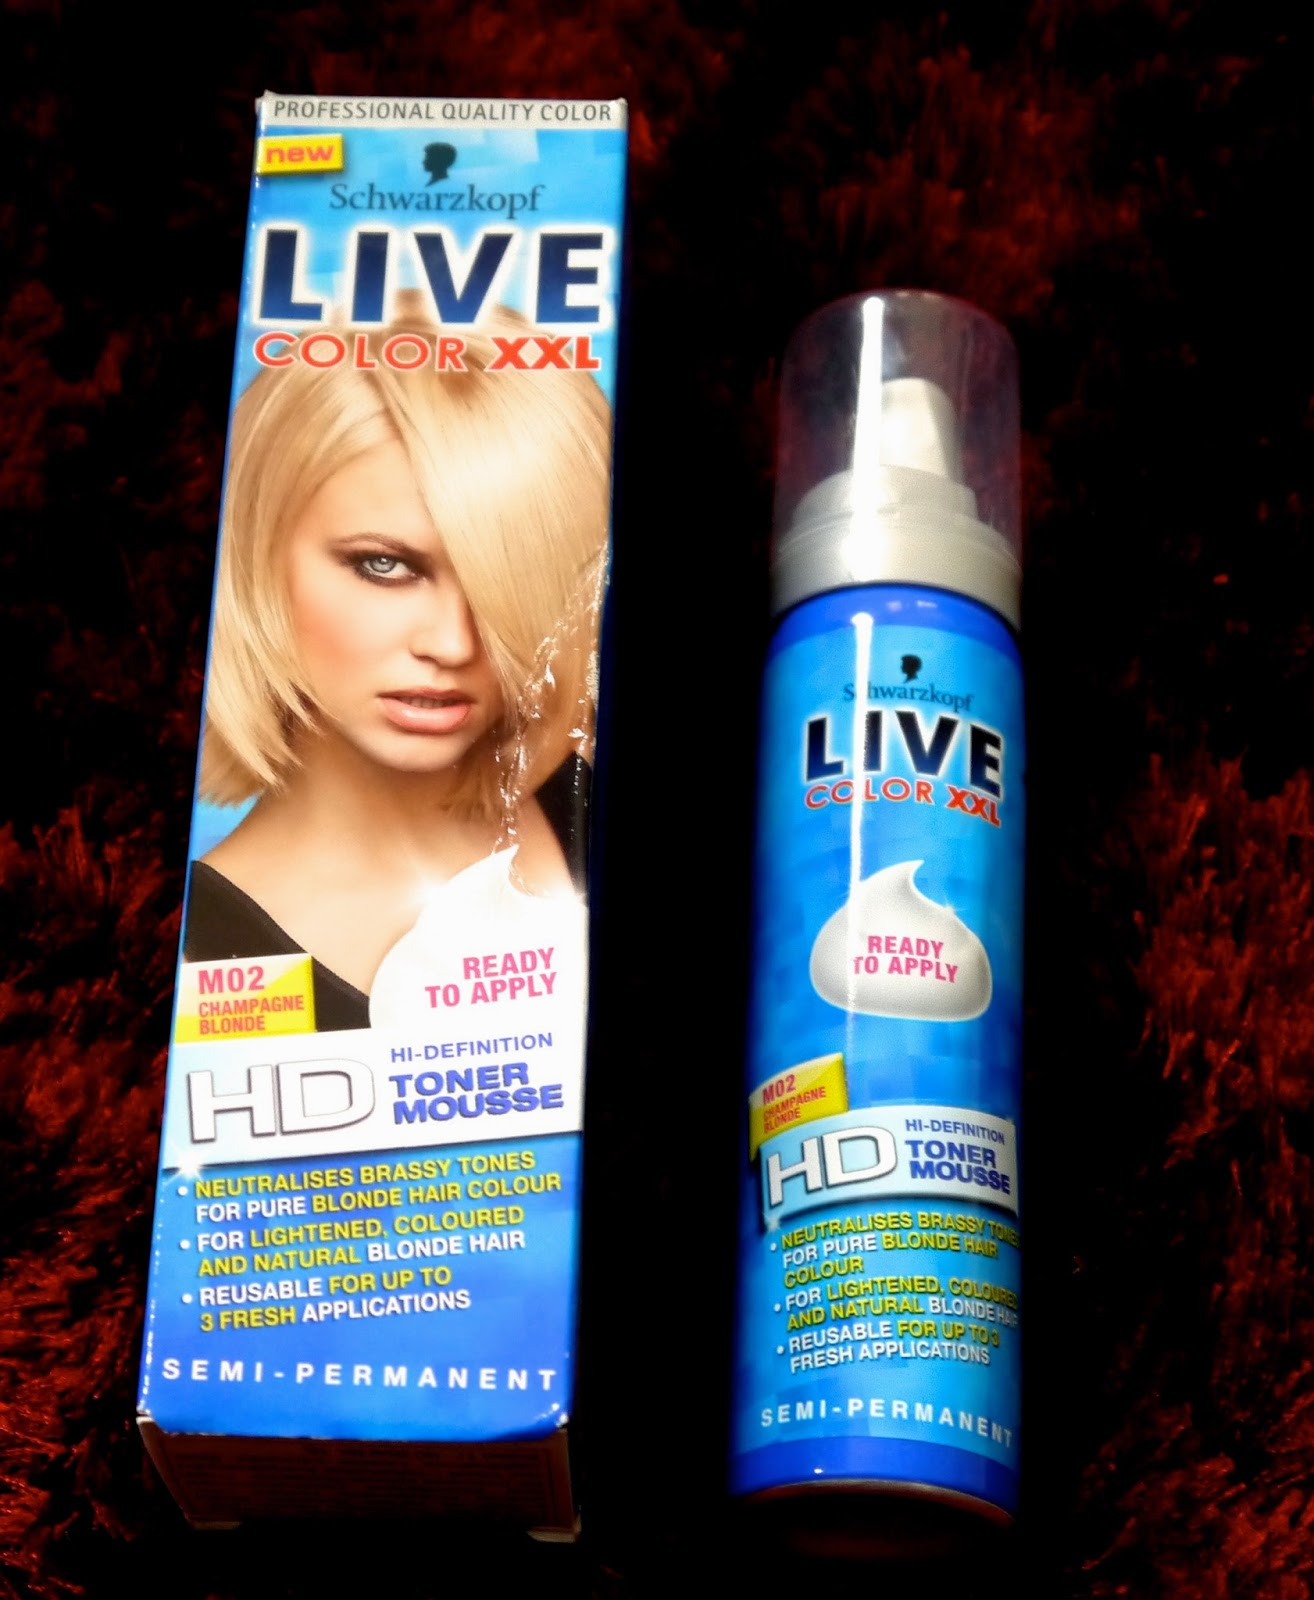 Live Colour Xxl Toner Mousse For Blonde Hair Before After